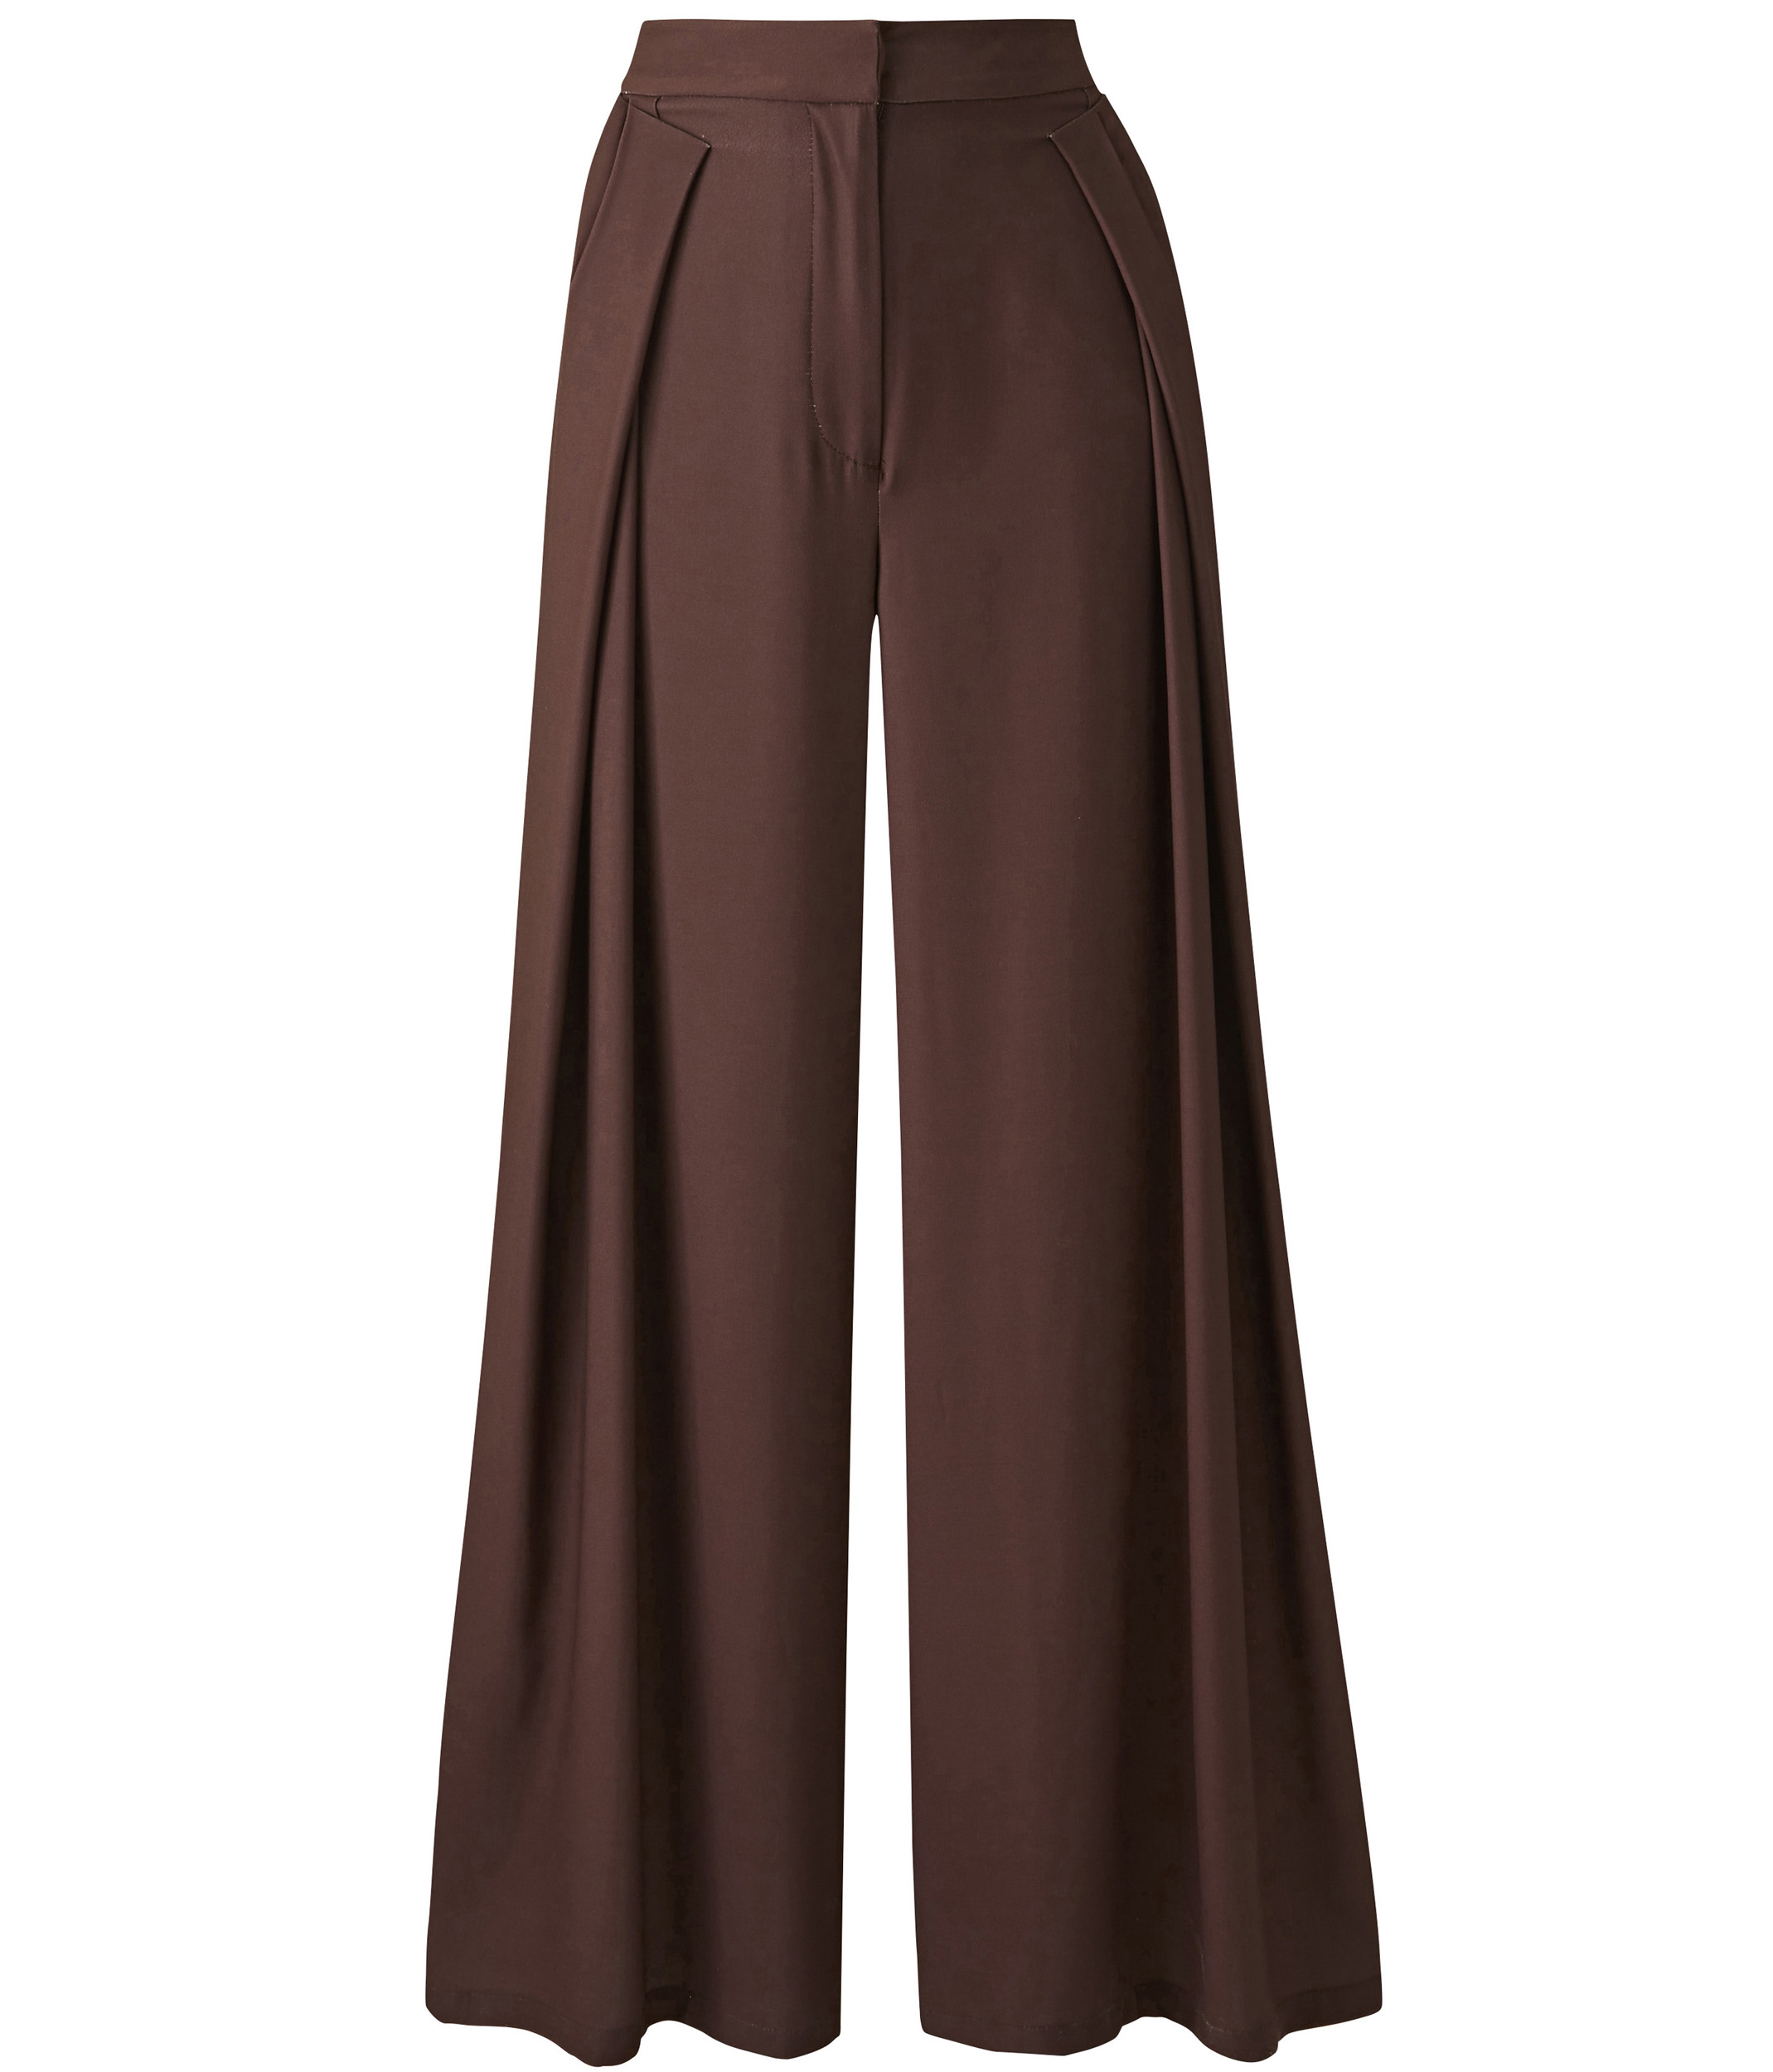 JD Williams Chocolate Wrap Wide Leg Trousers